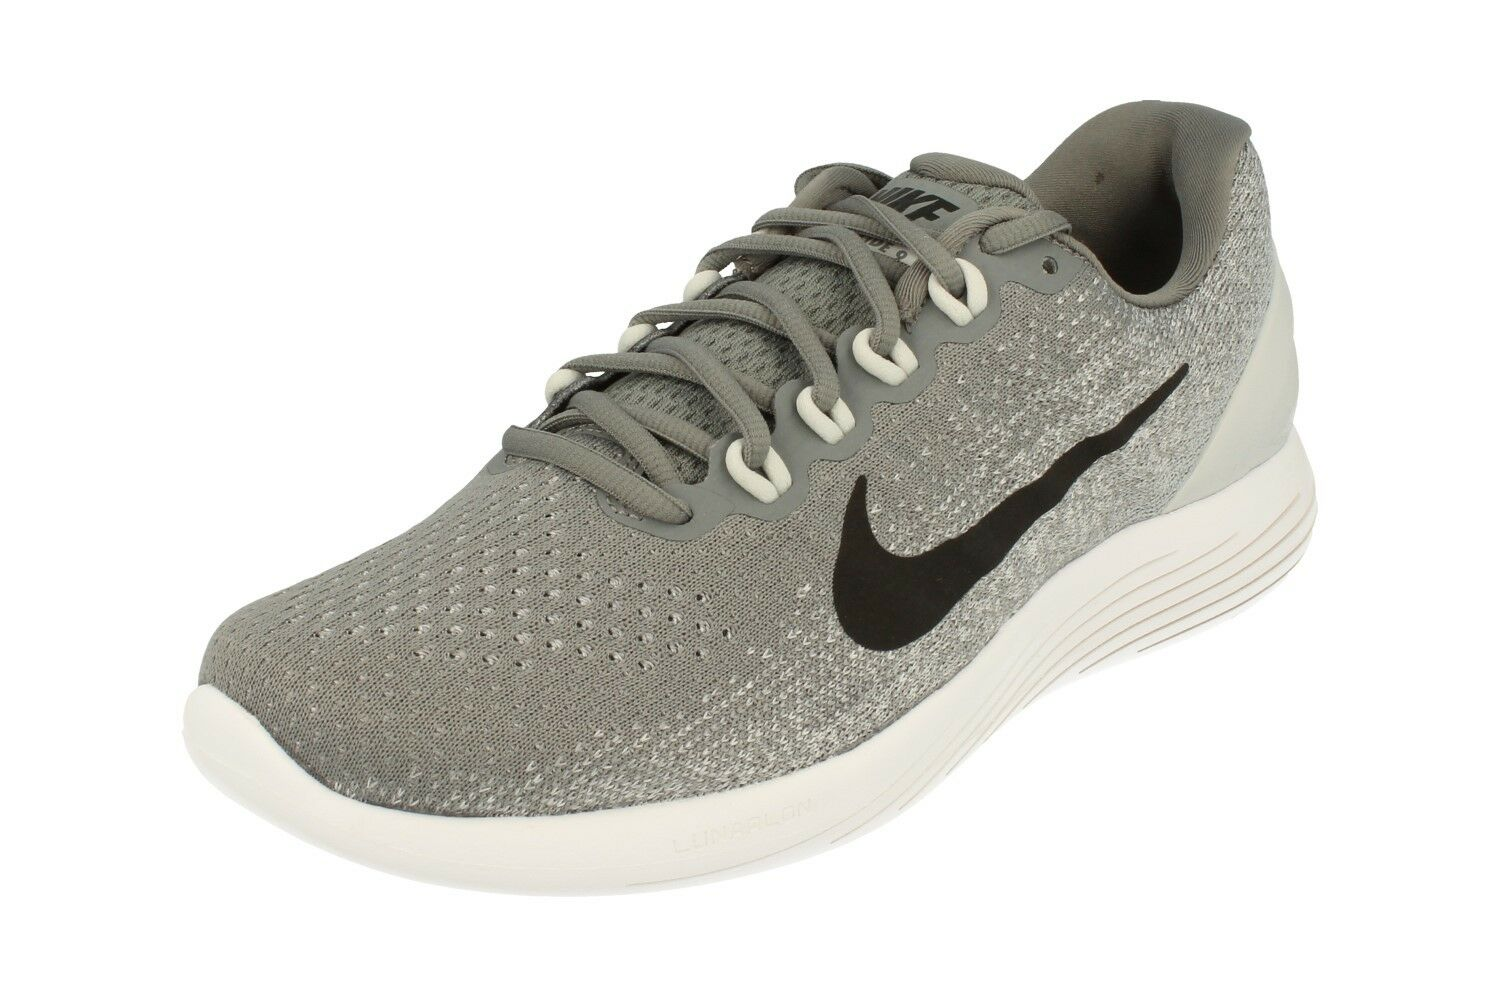 4438cac7d8a3a Nike Lunarglide 9 Mens Running Trainers 904715 Sneakers Shoes Shoes Shoes  002 28fa53